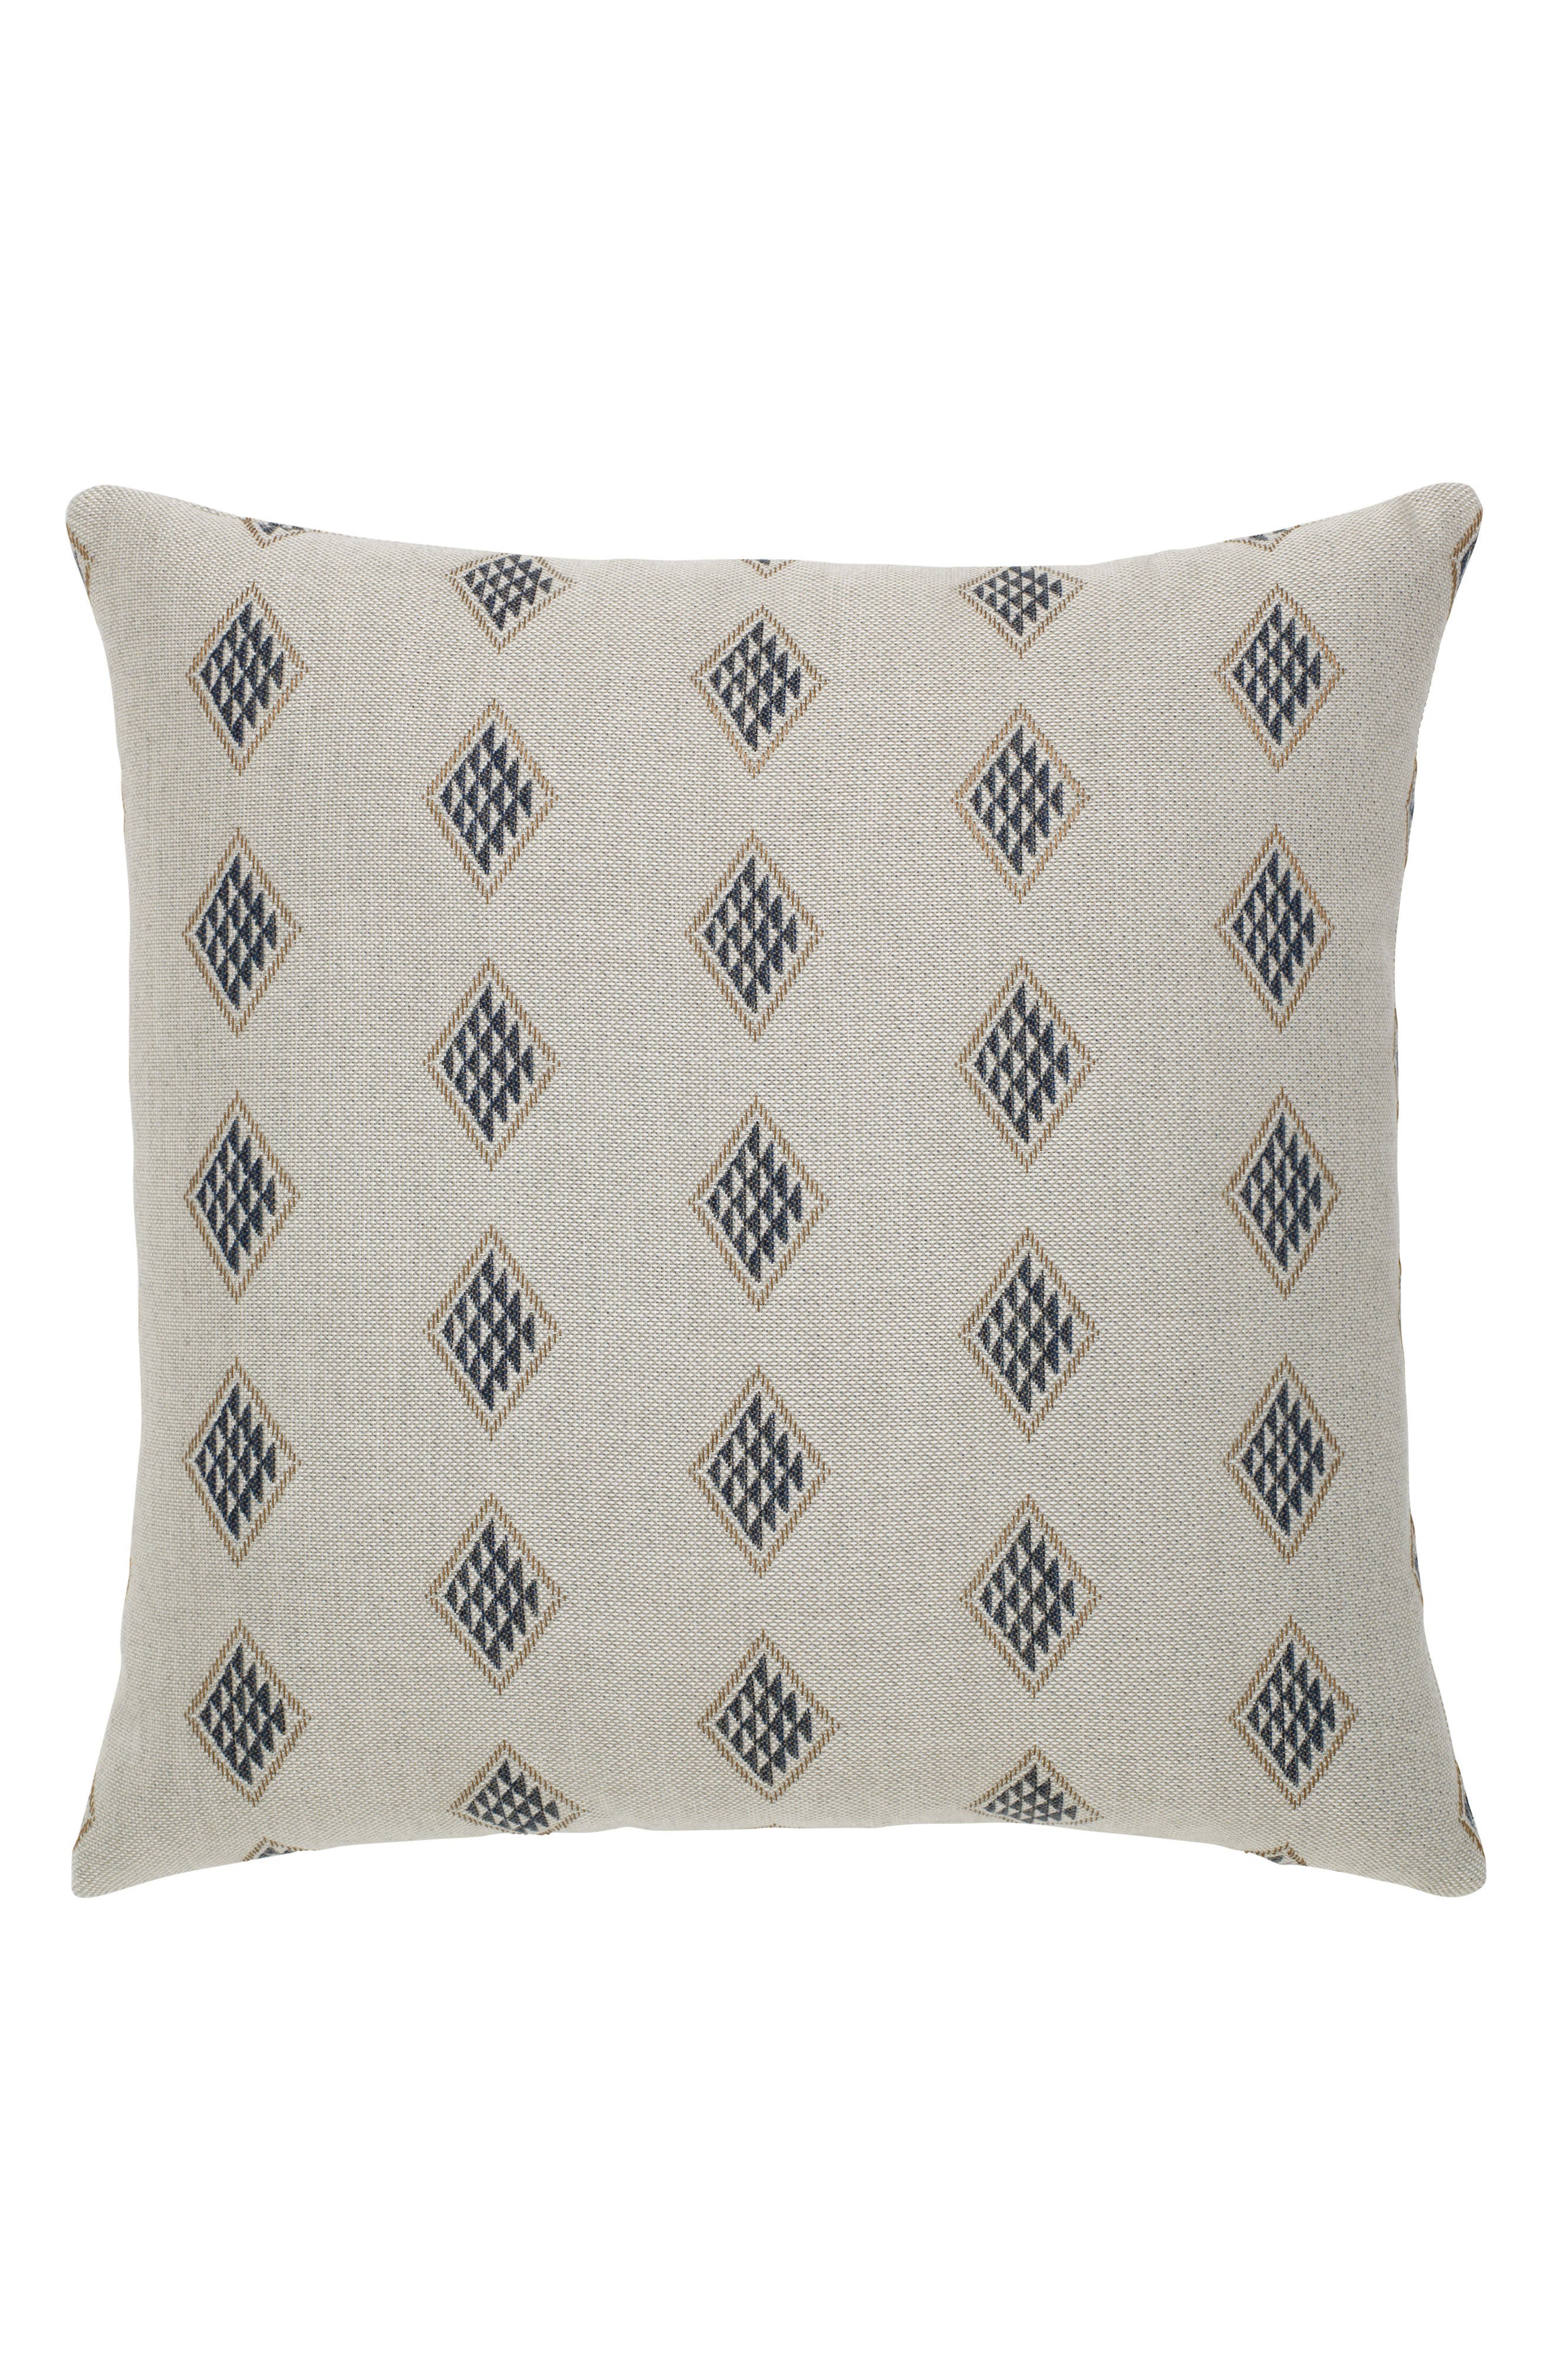 Passage Indoor/Outdoor Accent Pillow,                             Alternate thumbnail 3, color,                             Ivory